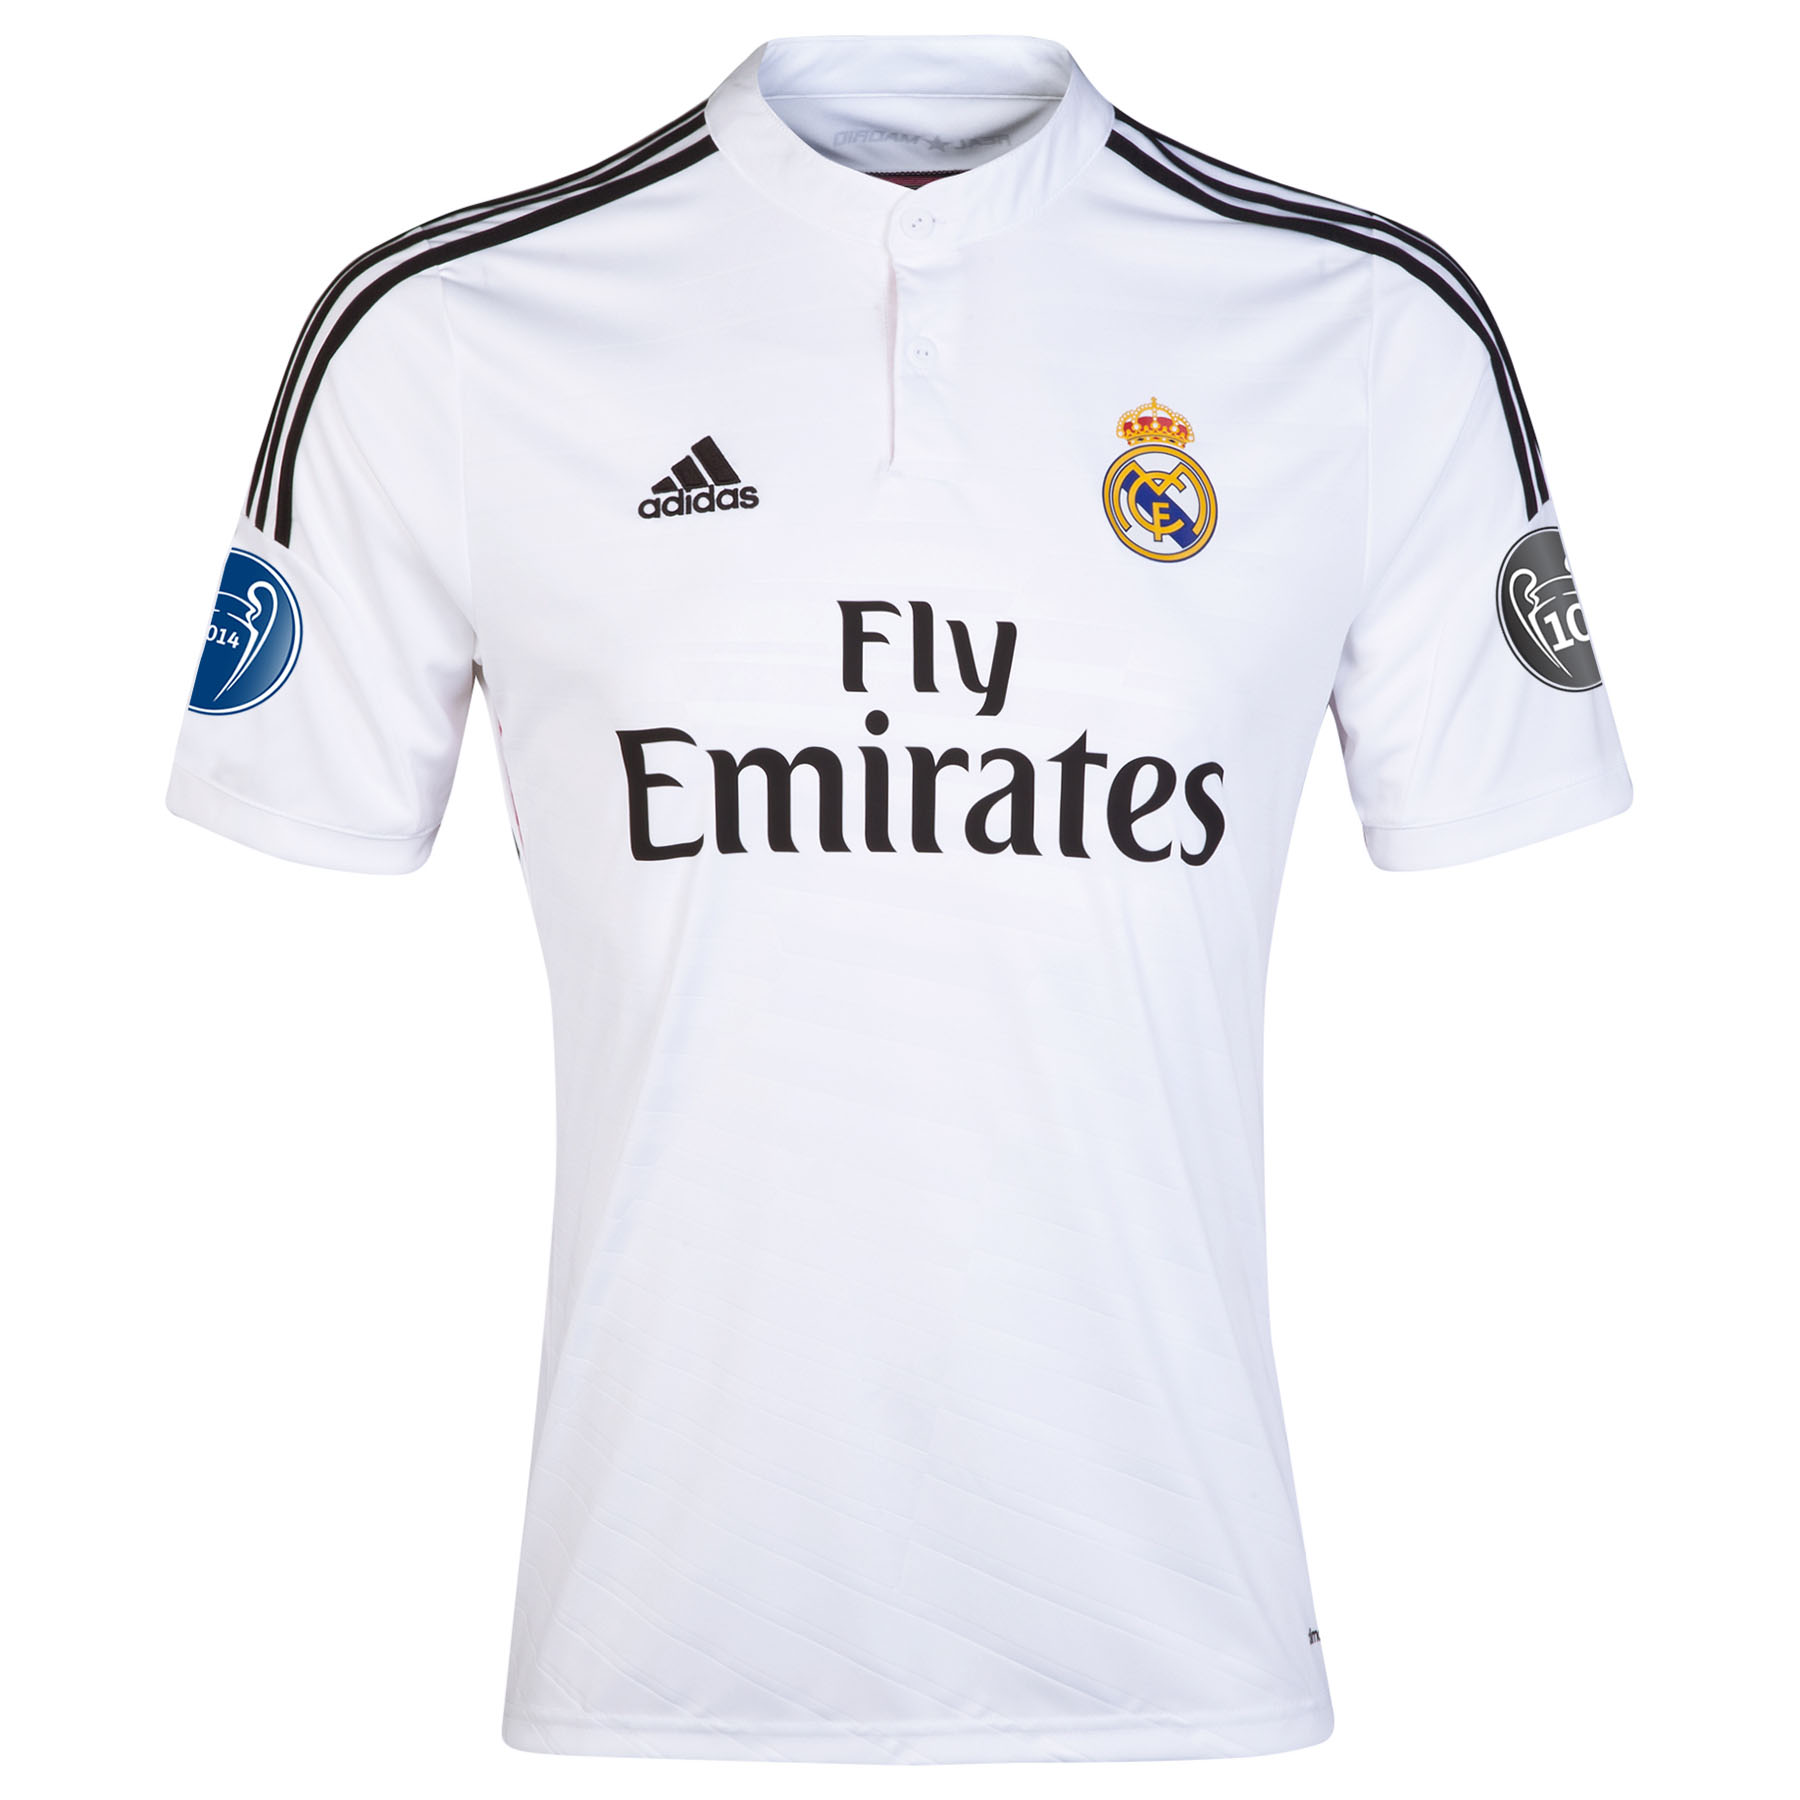 Real Madrid UEFA Champions League Home Shirt 2014/15 - Kids